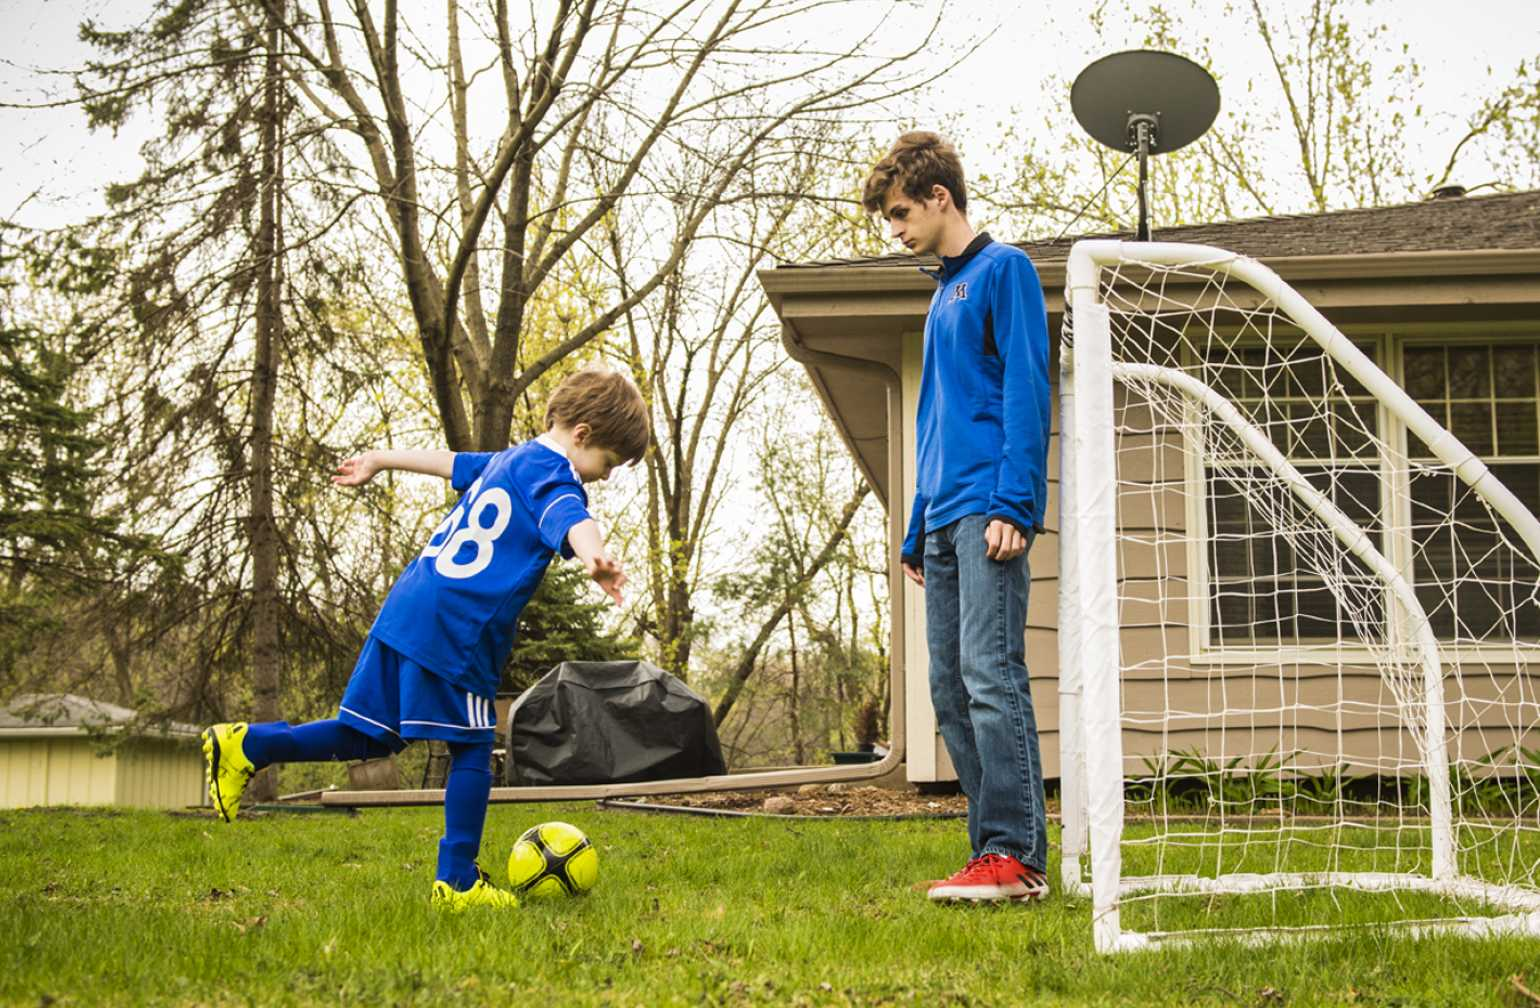 gillette patient ezra runs and practices kicking a goal at home